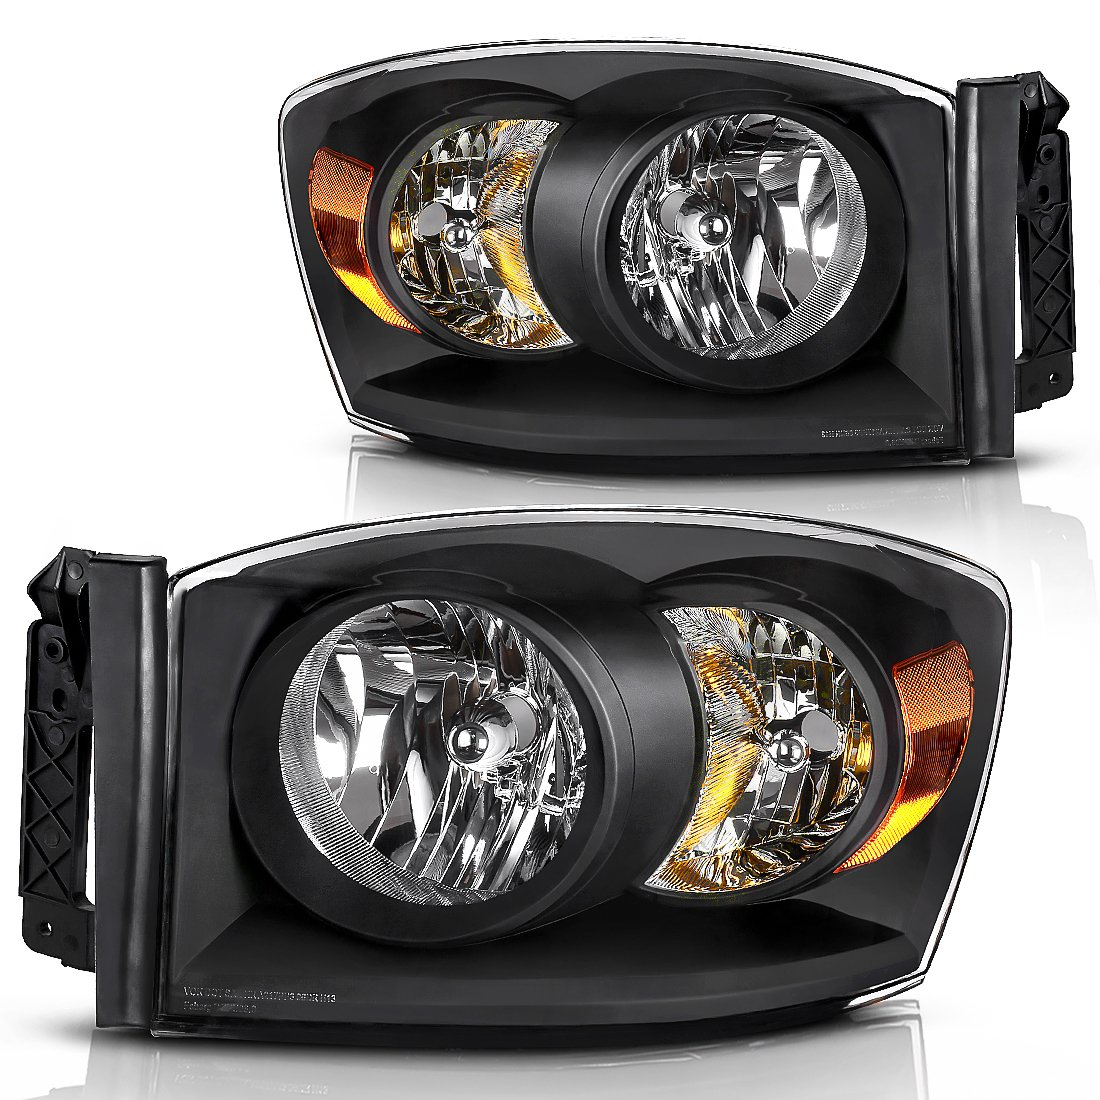 Headlight Assembly for 2006-2008 Dodge Ram 1500 2500 3500 Pickup Replacement Headlamp Driving Light Black Housing Amber Reflector Clear Lens,